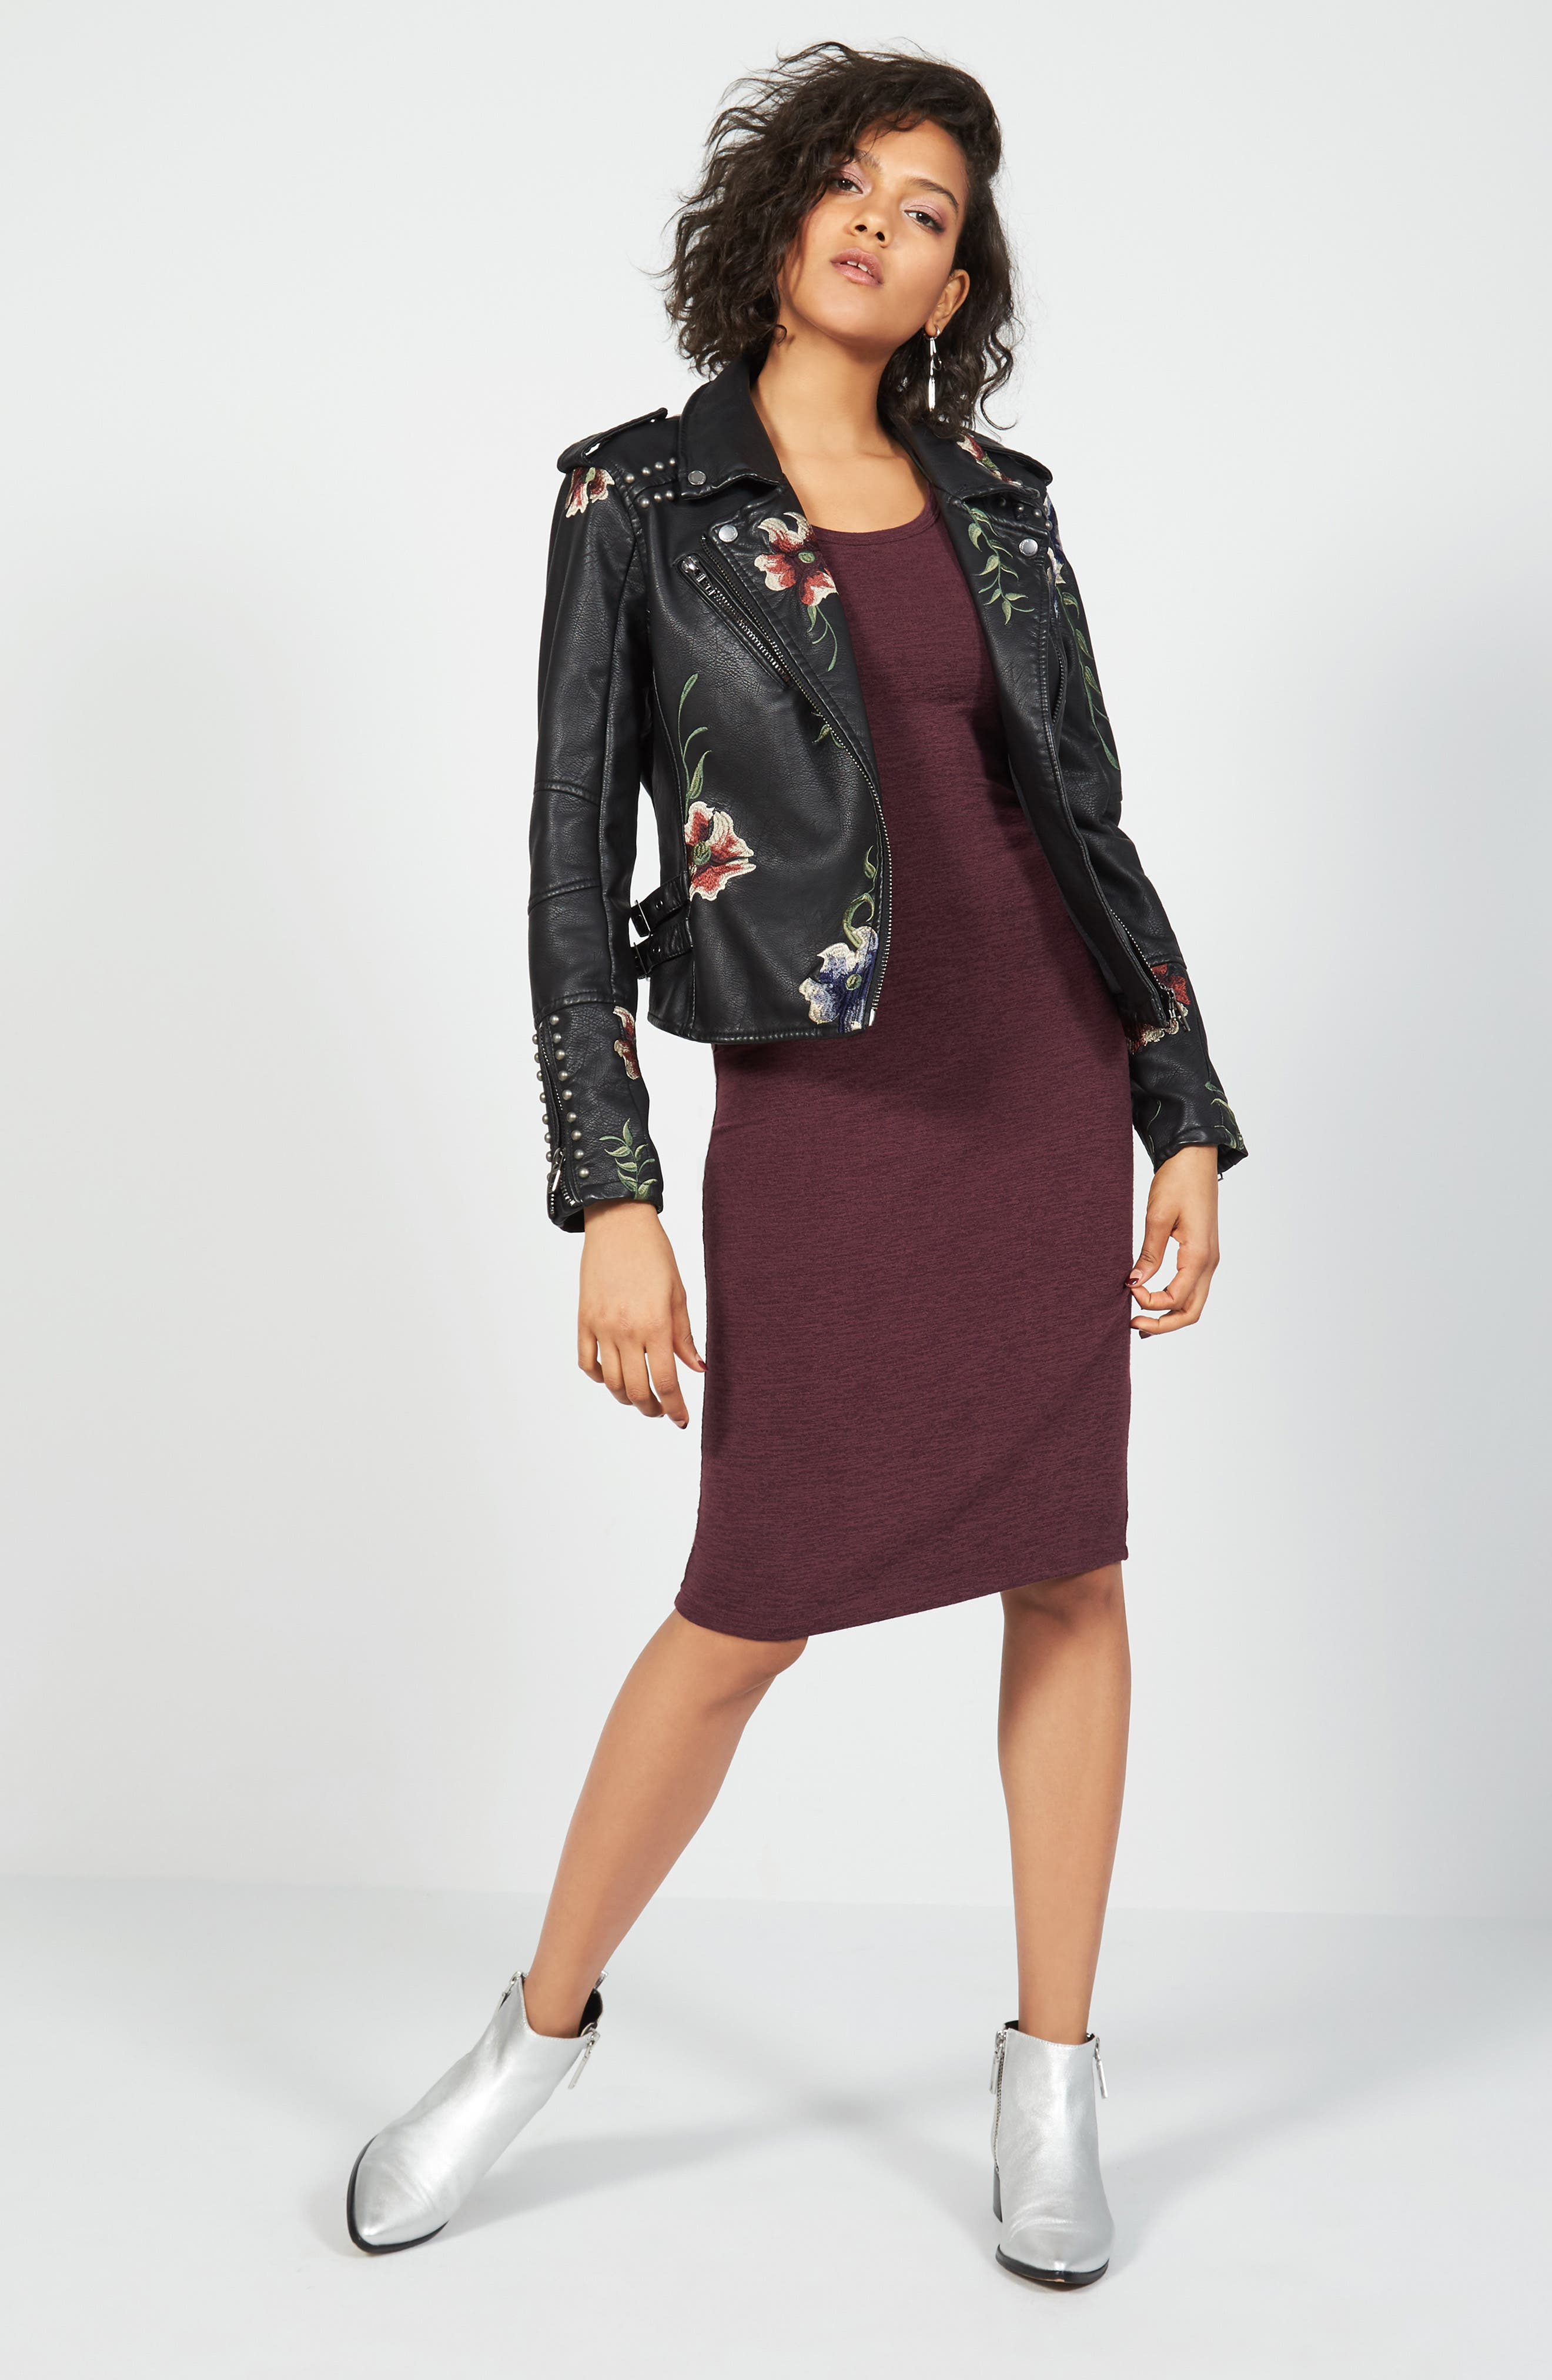 BLANKNYC Jacket & Leith Dress Outfit with Accessories